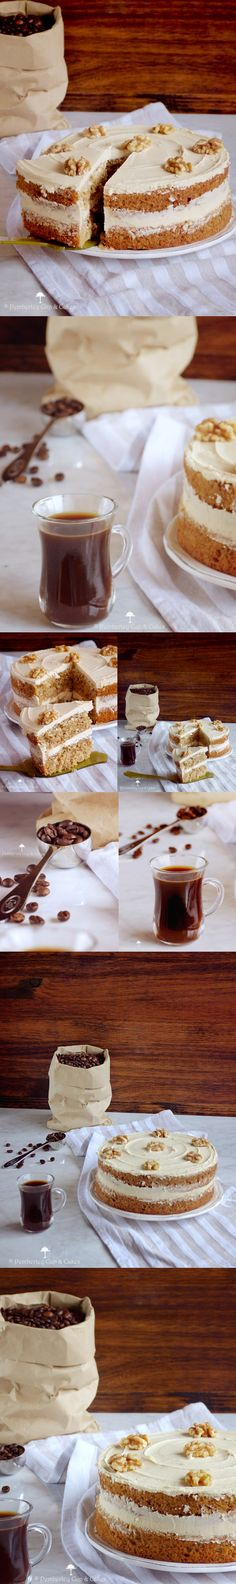 Cocina – Recetas y Consejos Sweet Recipes, Cake Recipes, Dessert Recipes, Just Cakes, Cakes And More, Fondant Cookies, Cupcake Cakes, Bakers Gonna Bake, Ice Cream Cookies